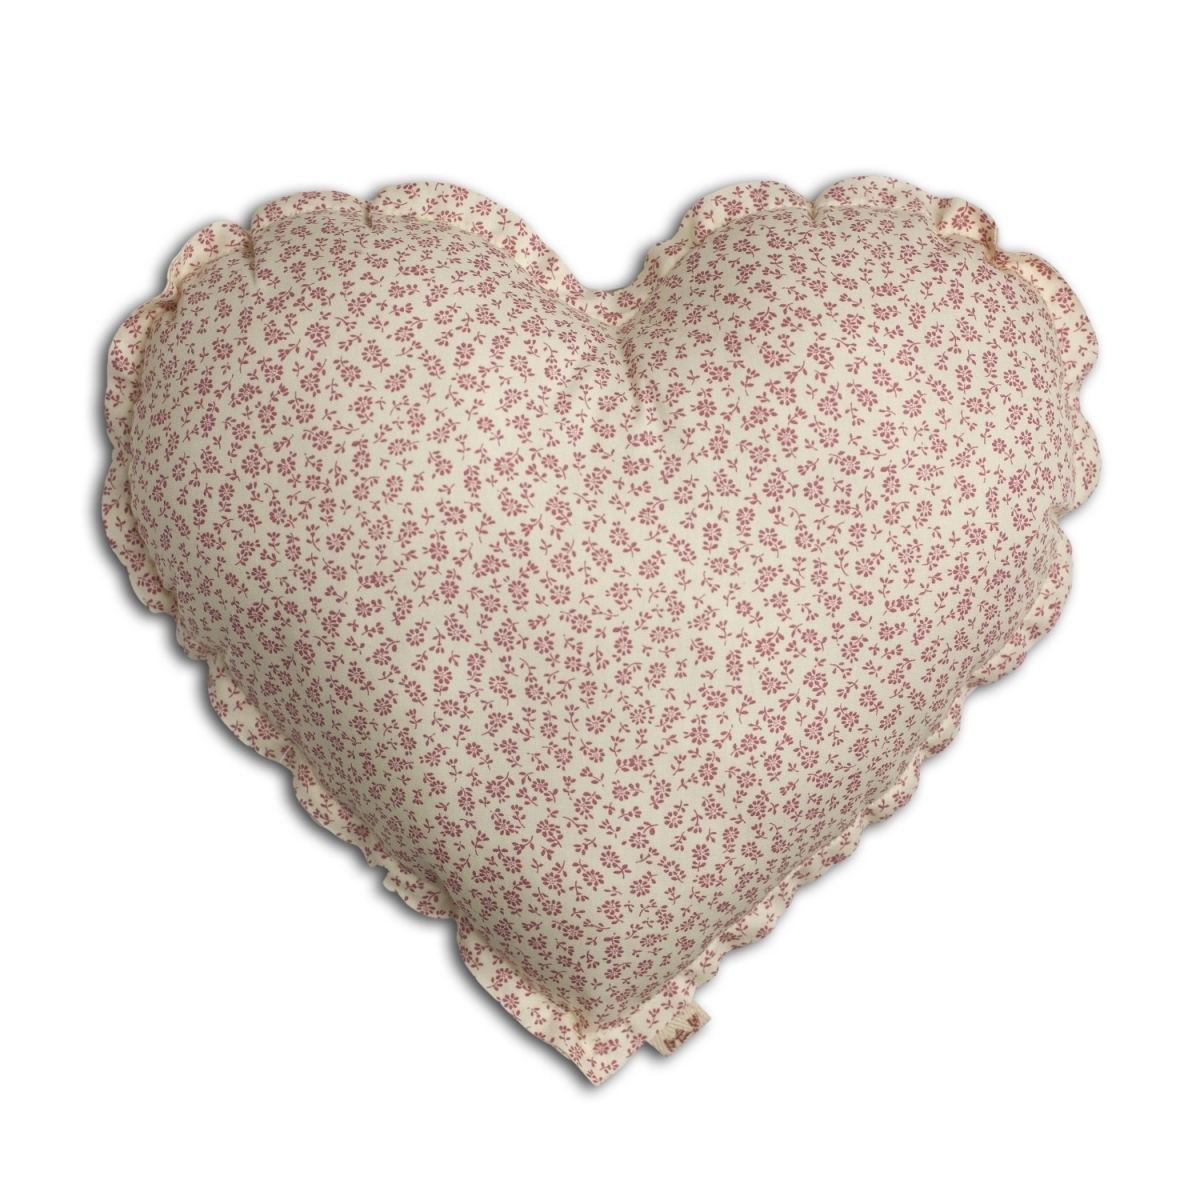 Heart Cushion cream with pink flowers - Numero 74